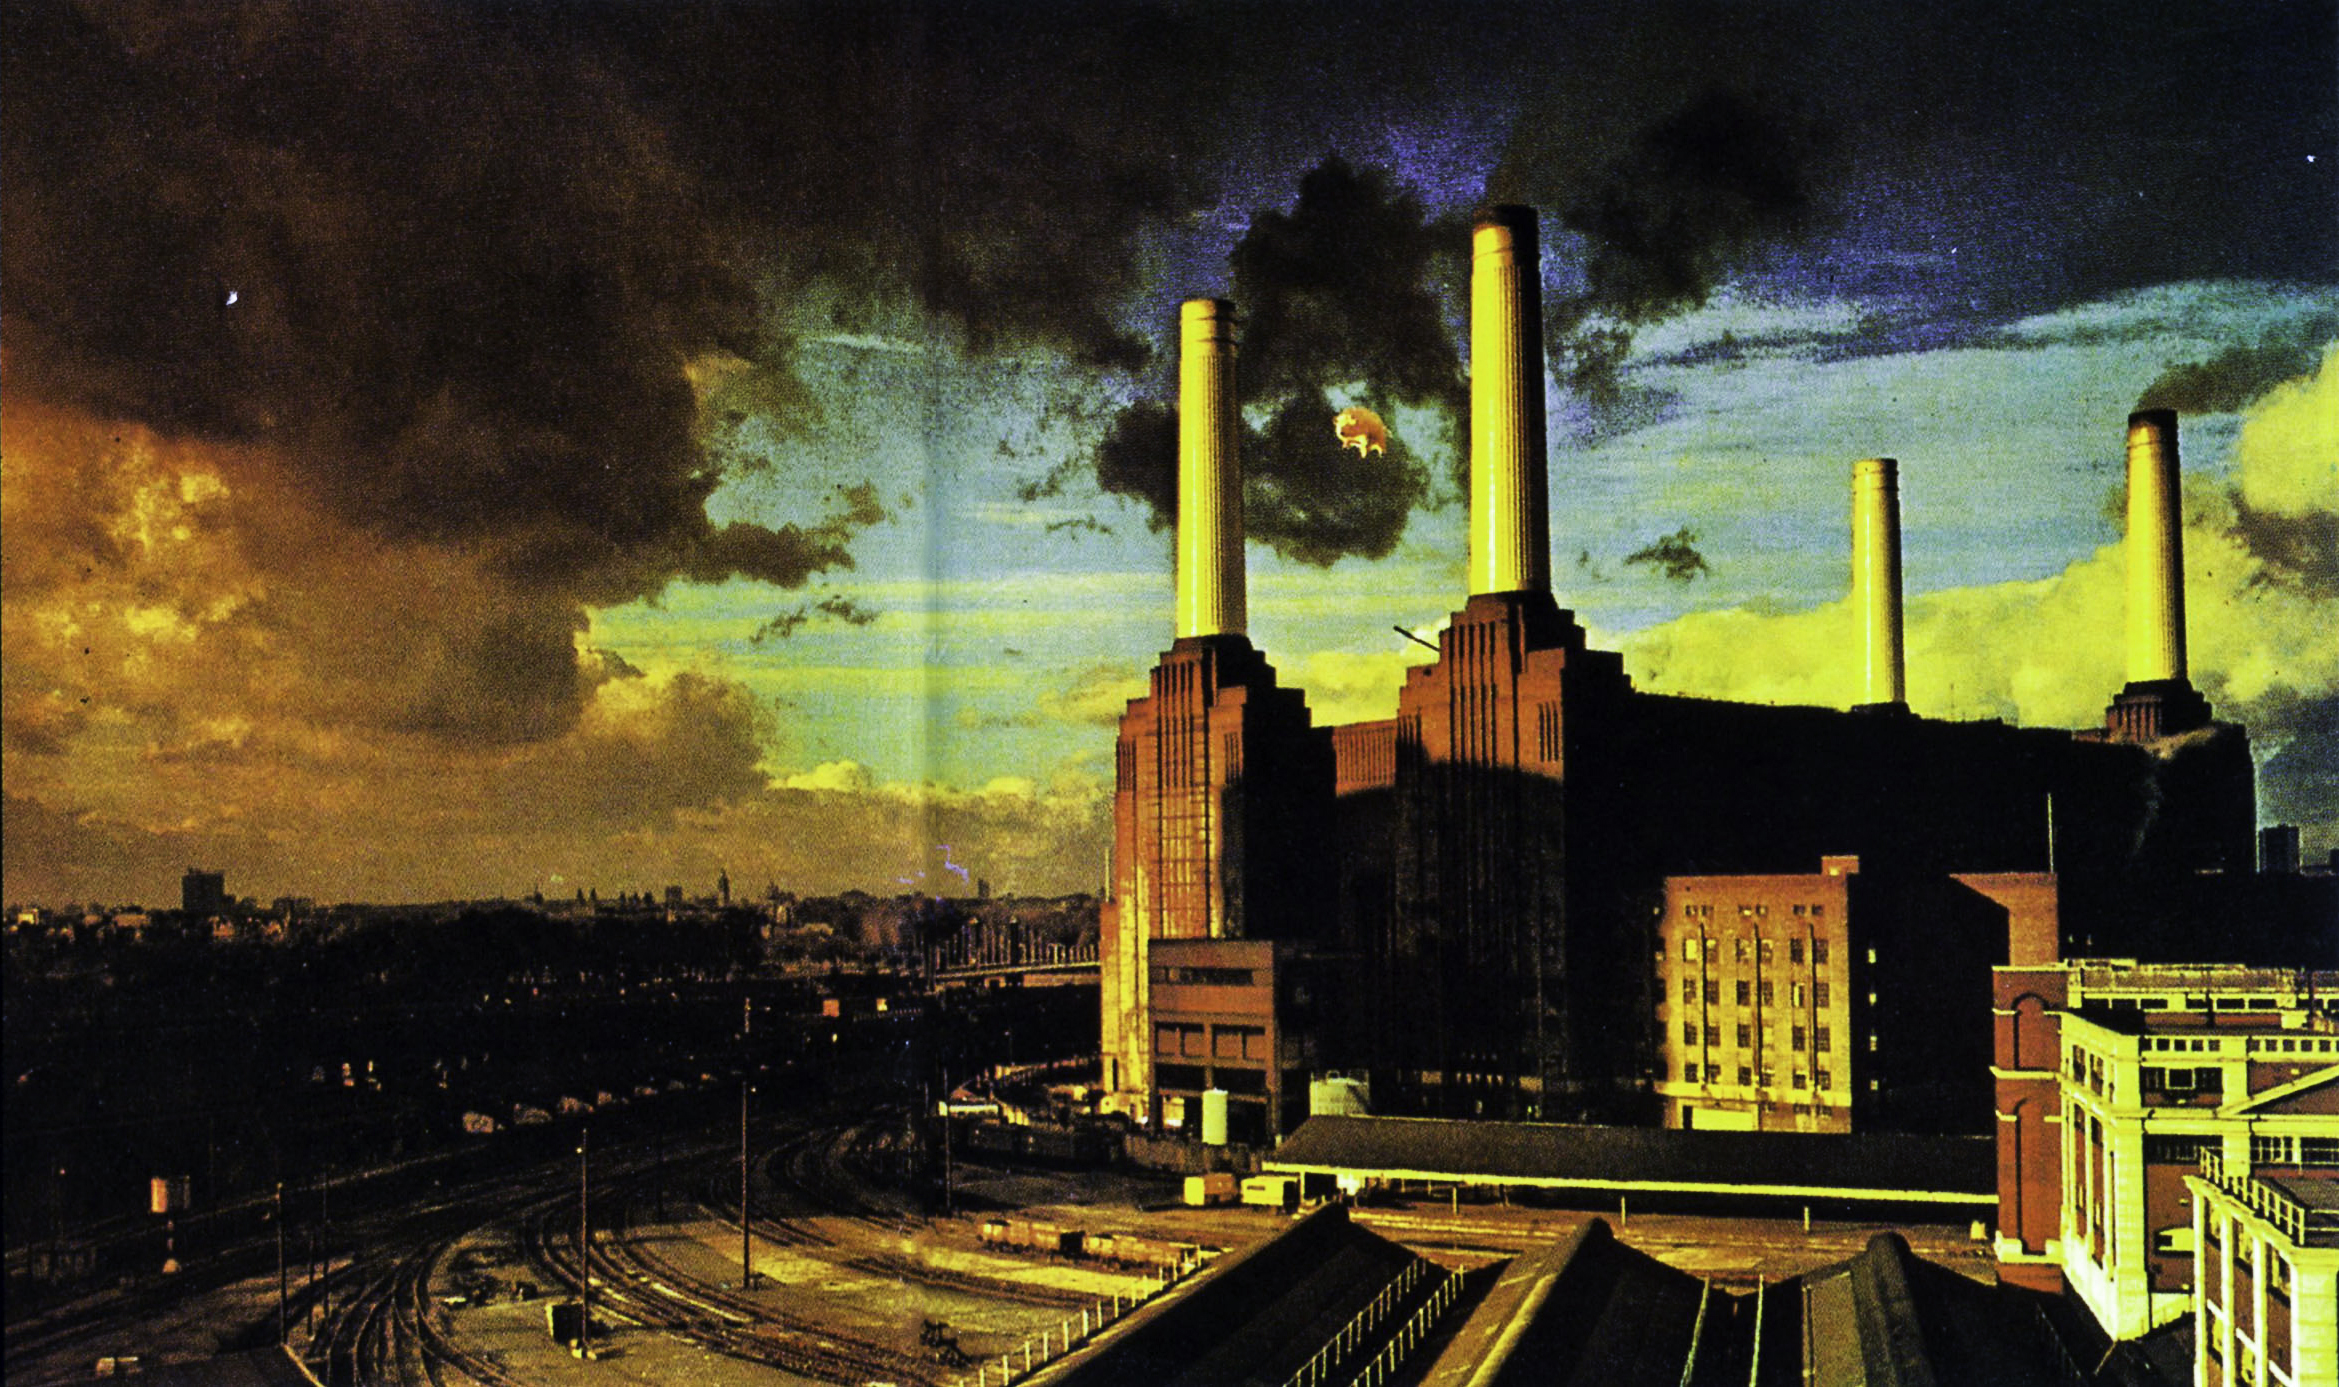 Pink Floyd Animals Wallpaper   Real HD by suinkka 2339x1387